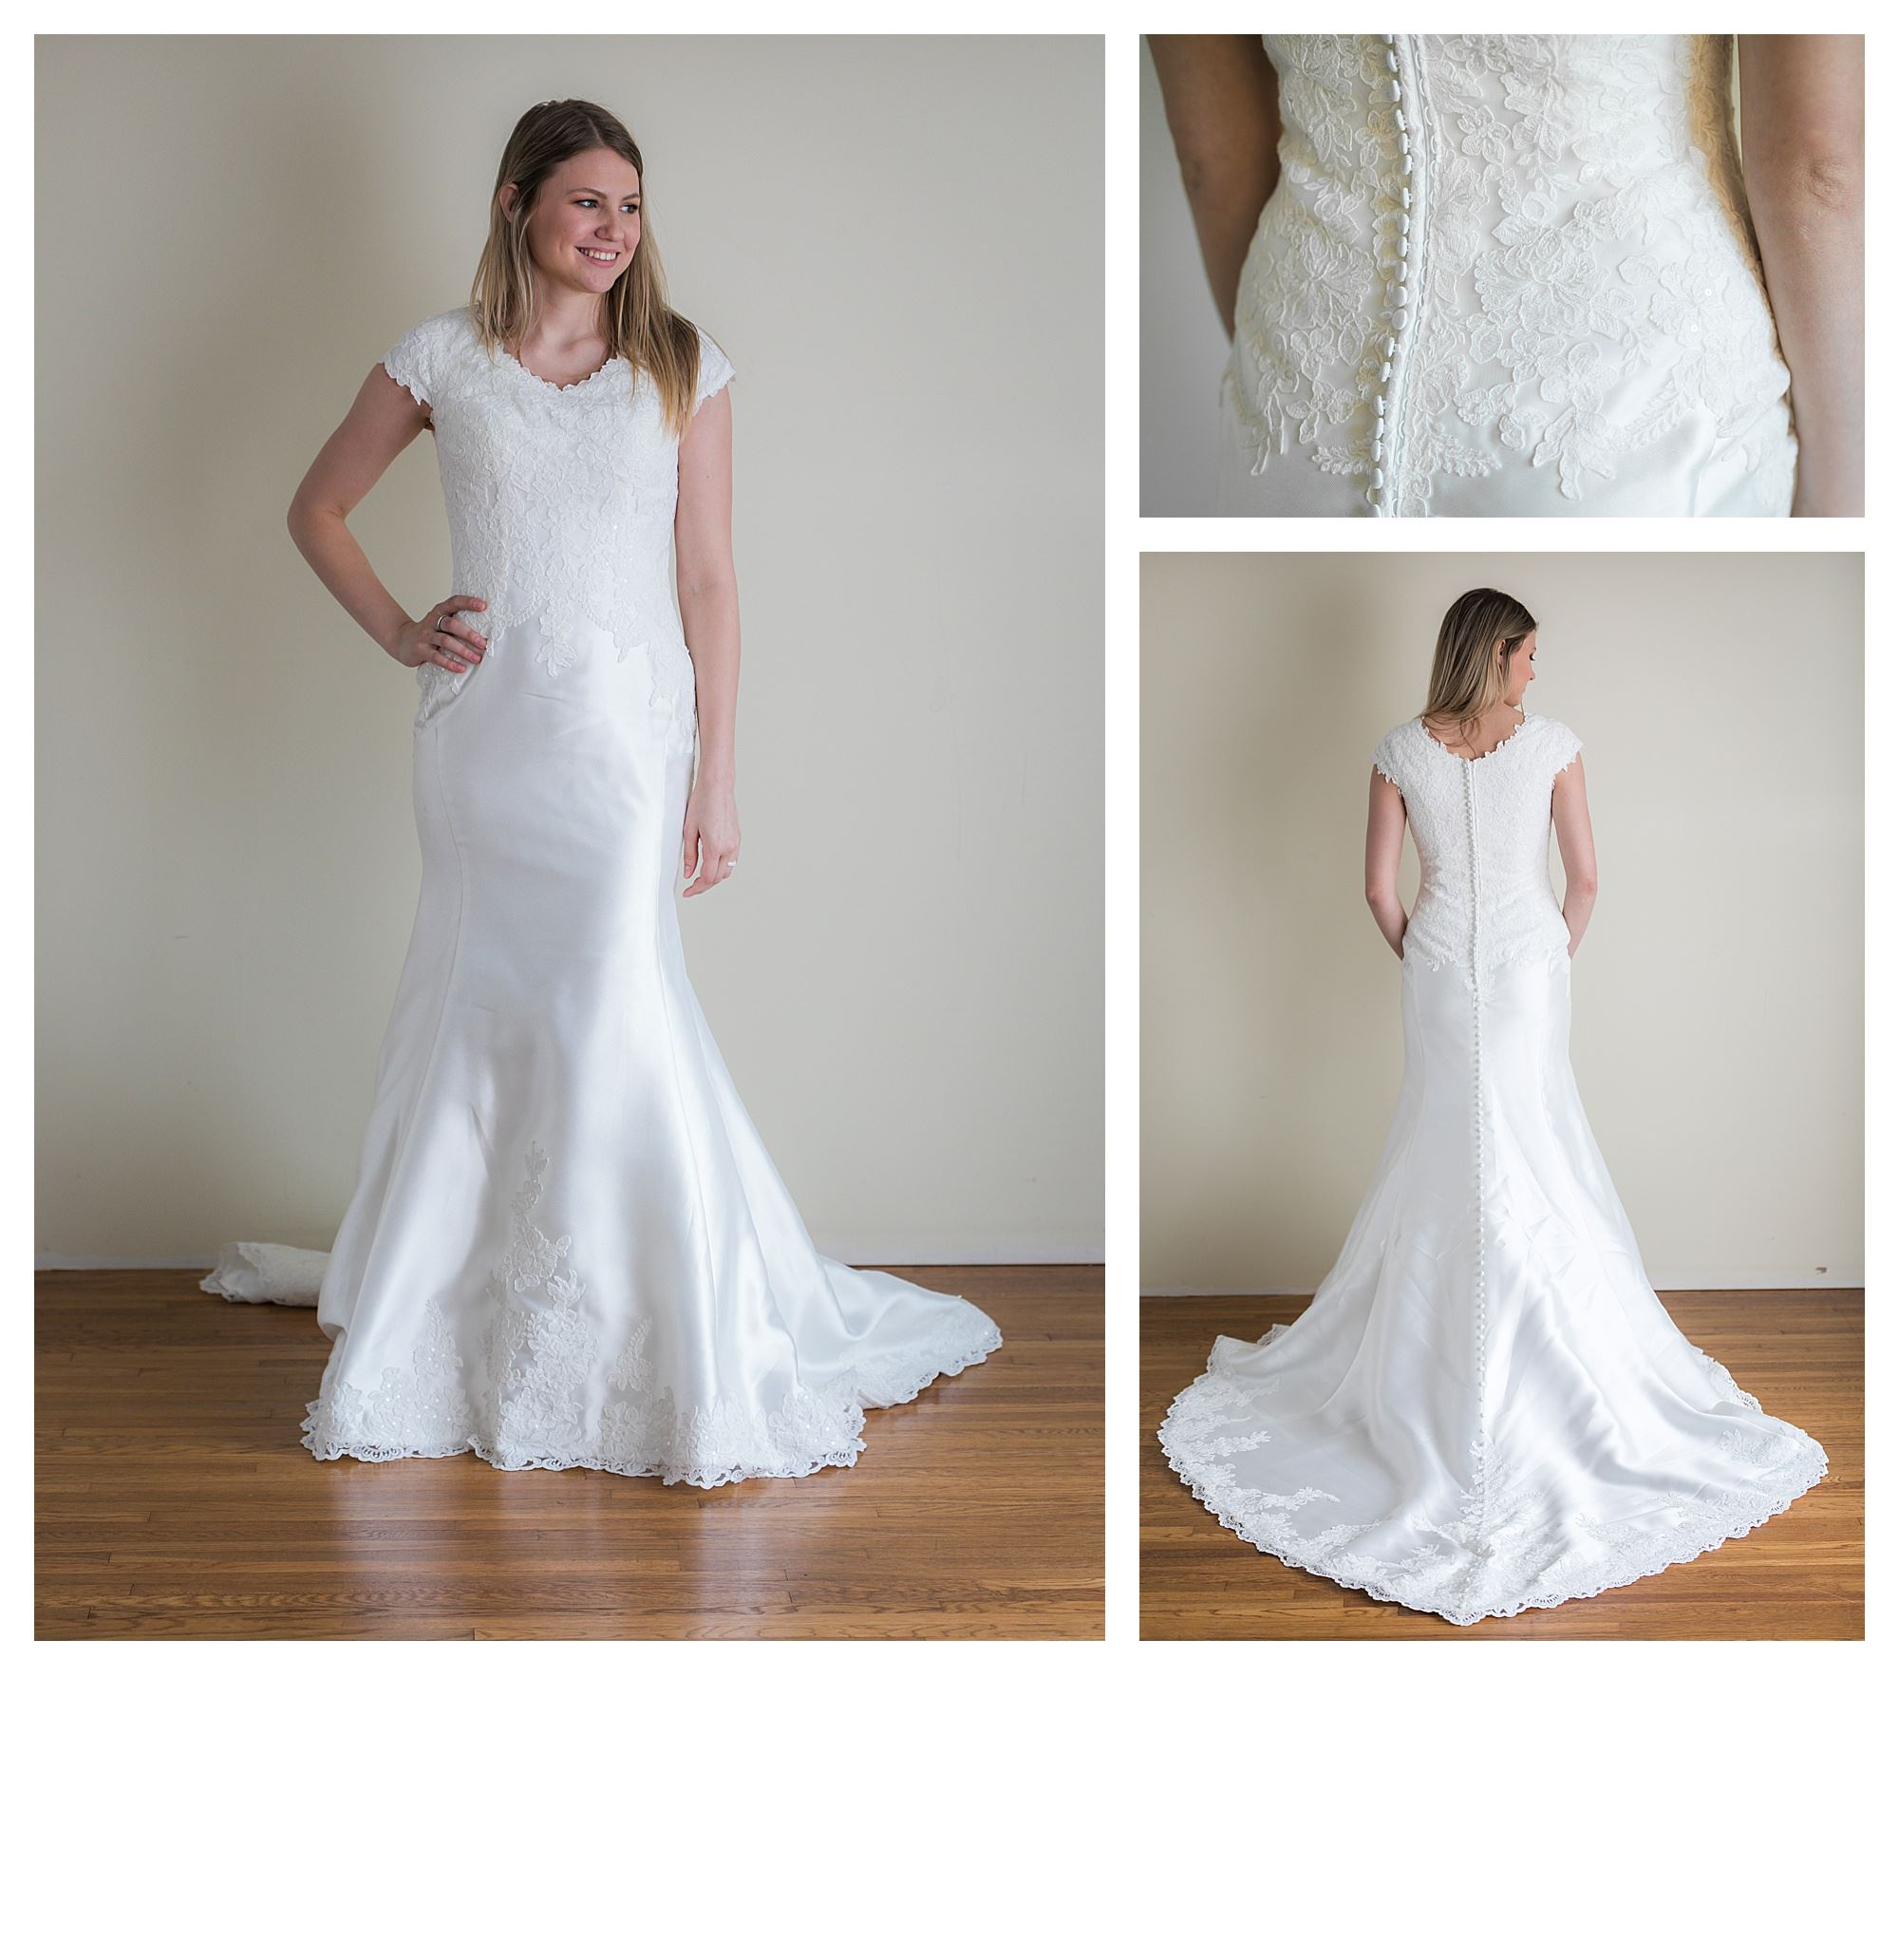 Serenity - Size 8 - Ivory - Originally priced $1999 - Sample box price $1399